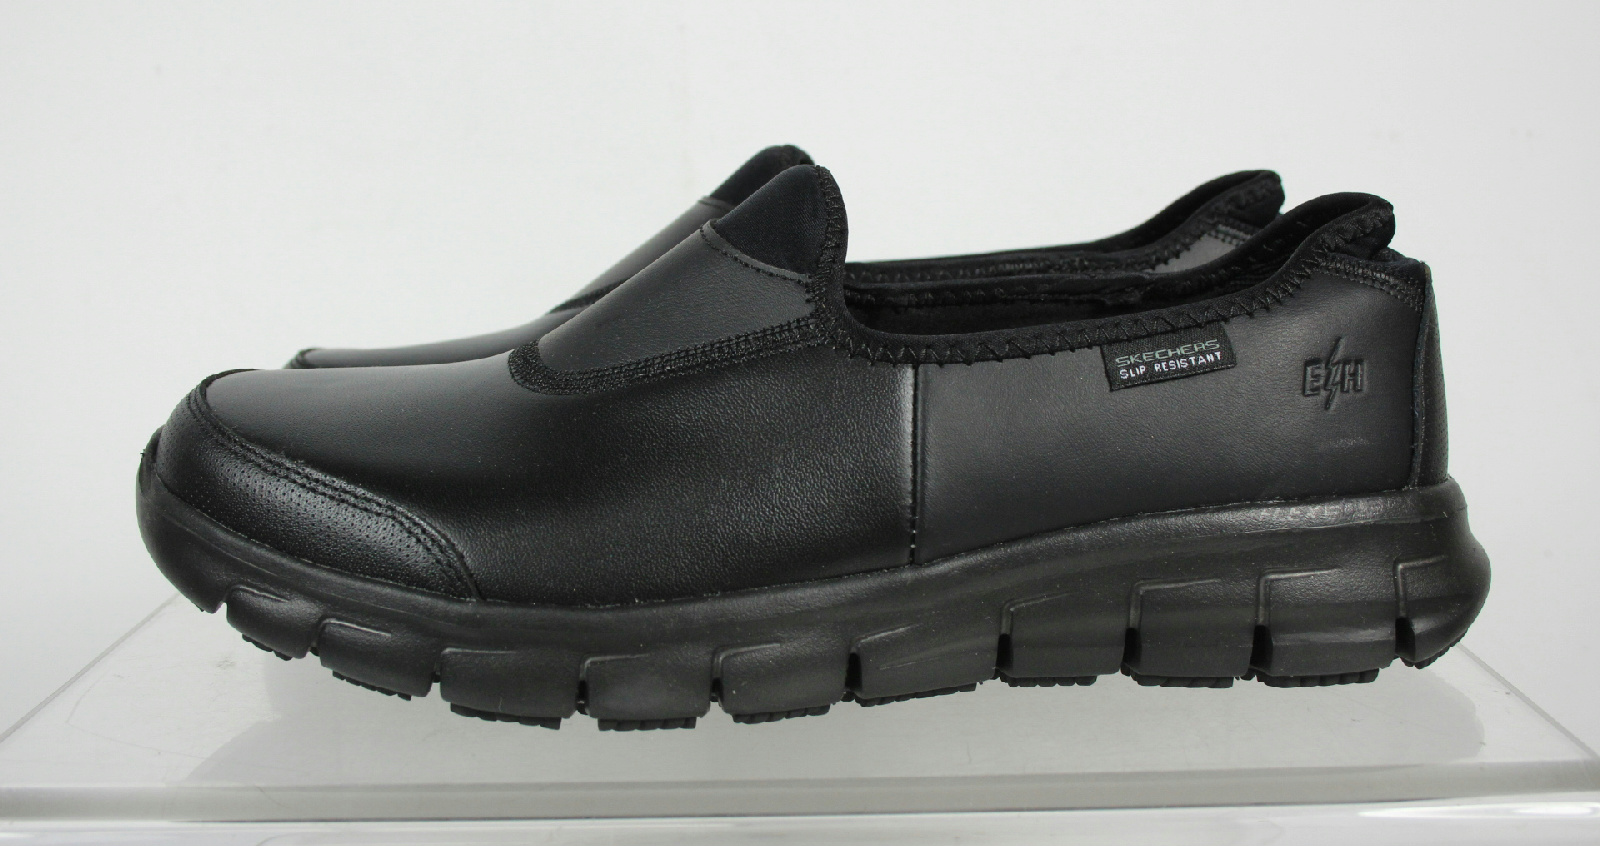 skechers black leather memory foam slip resistant work